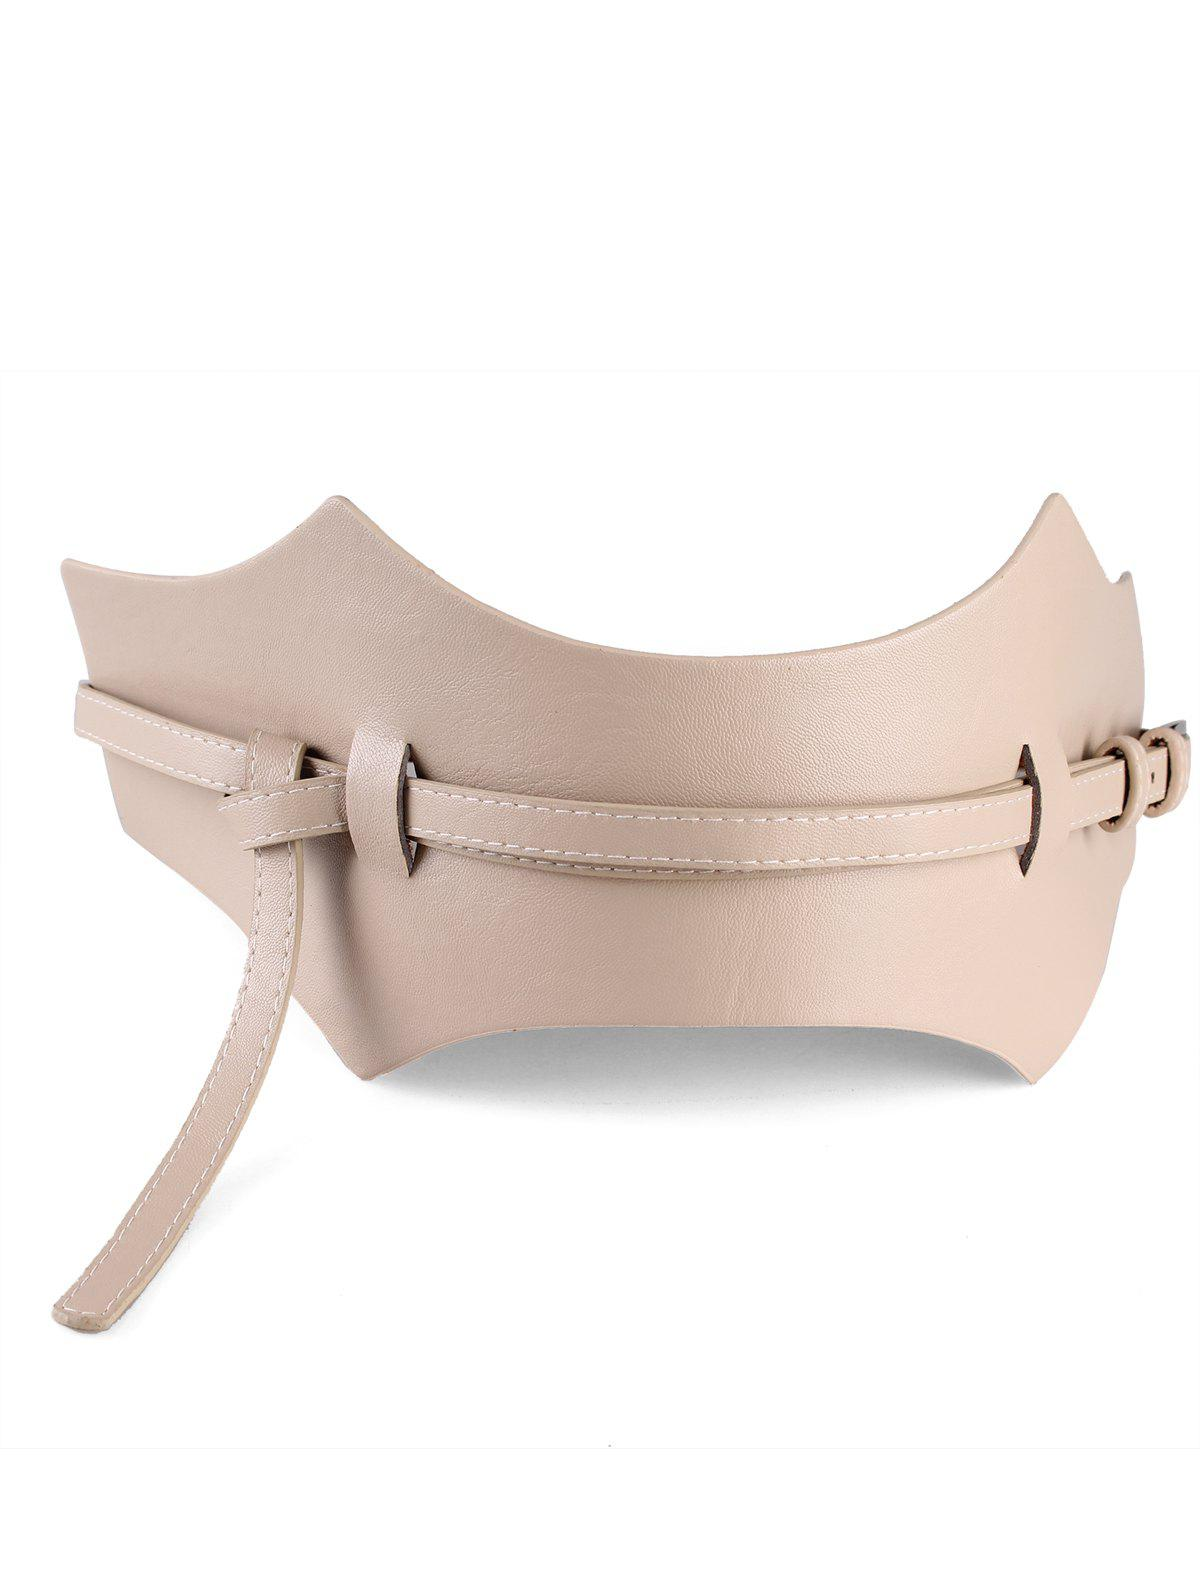 New Minimalist Super-Wide Waist Belt